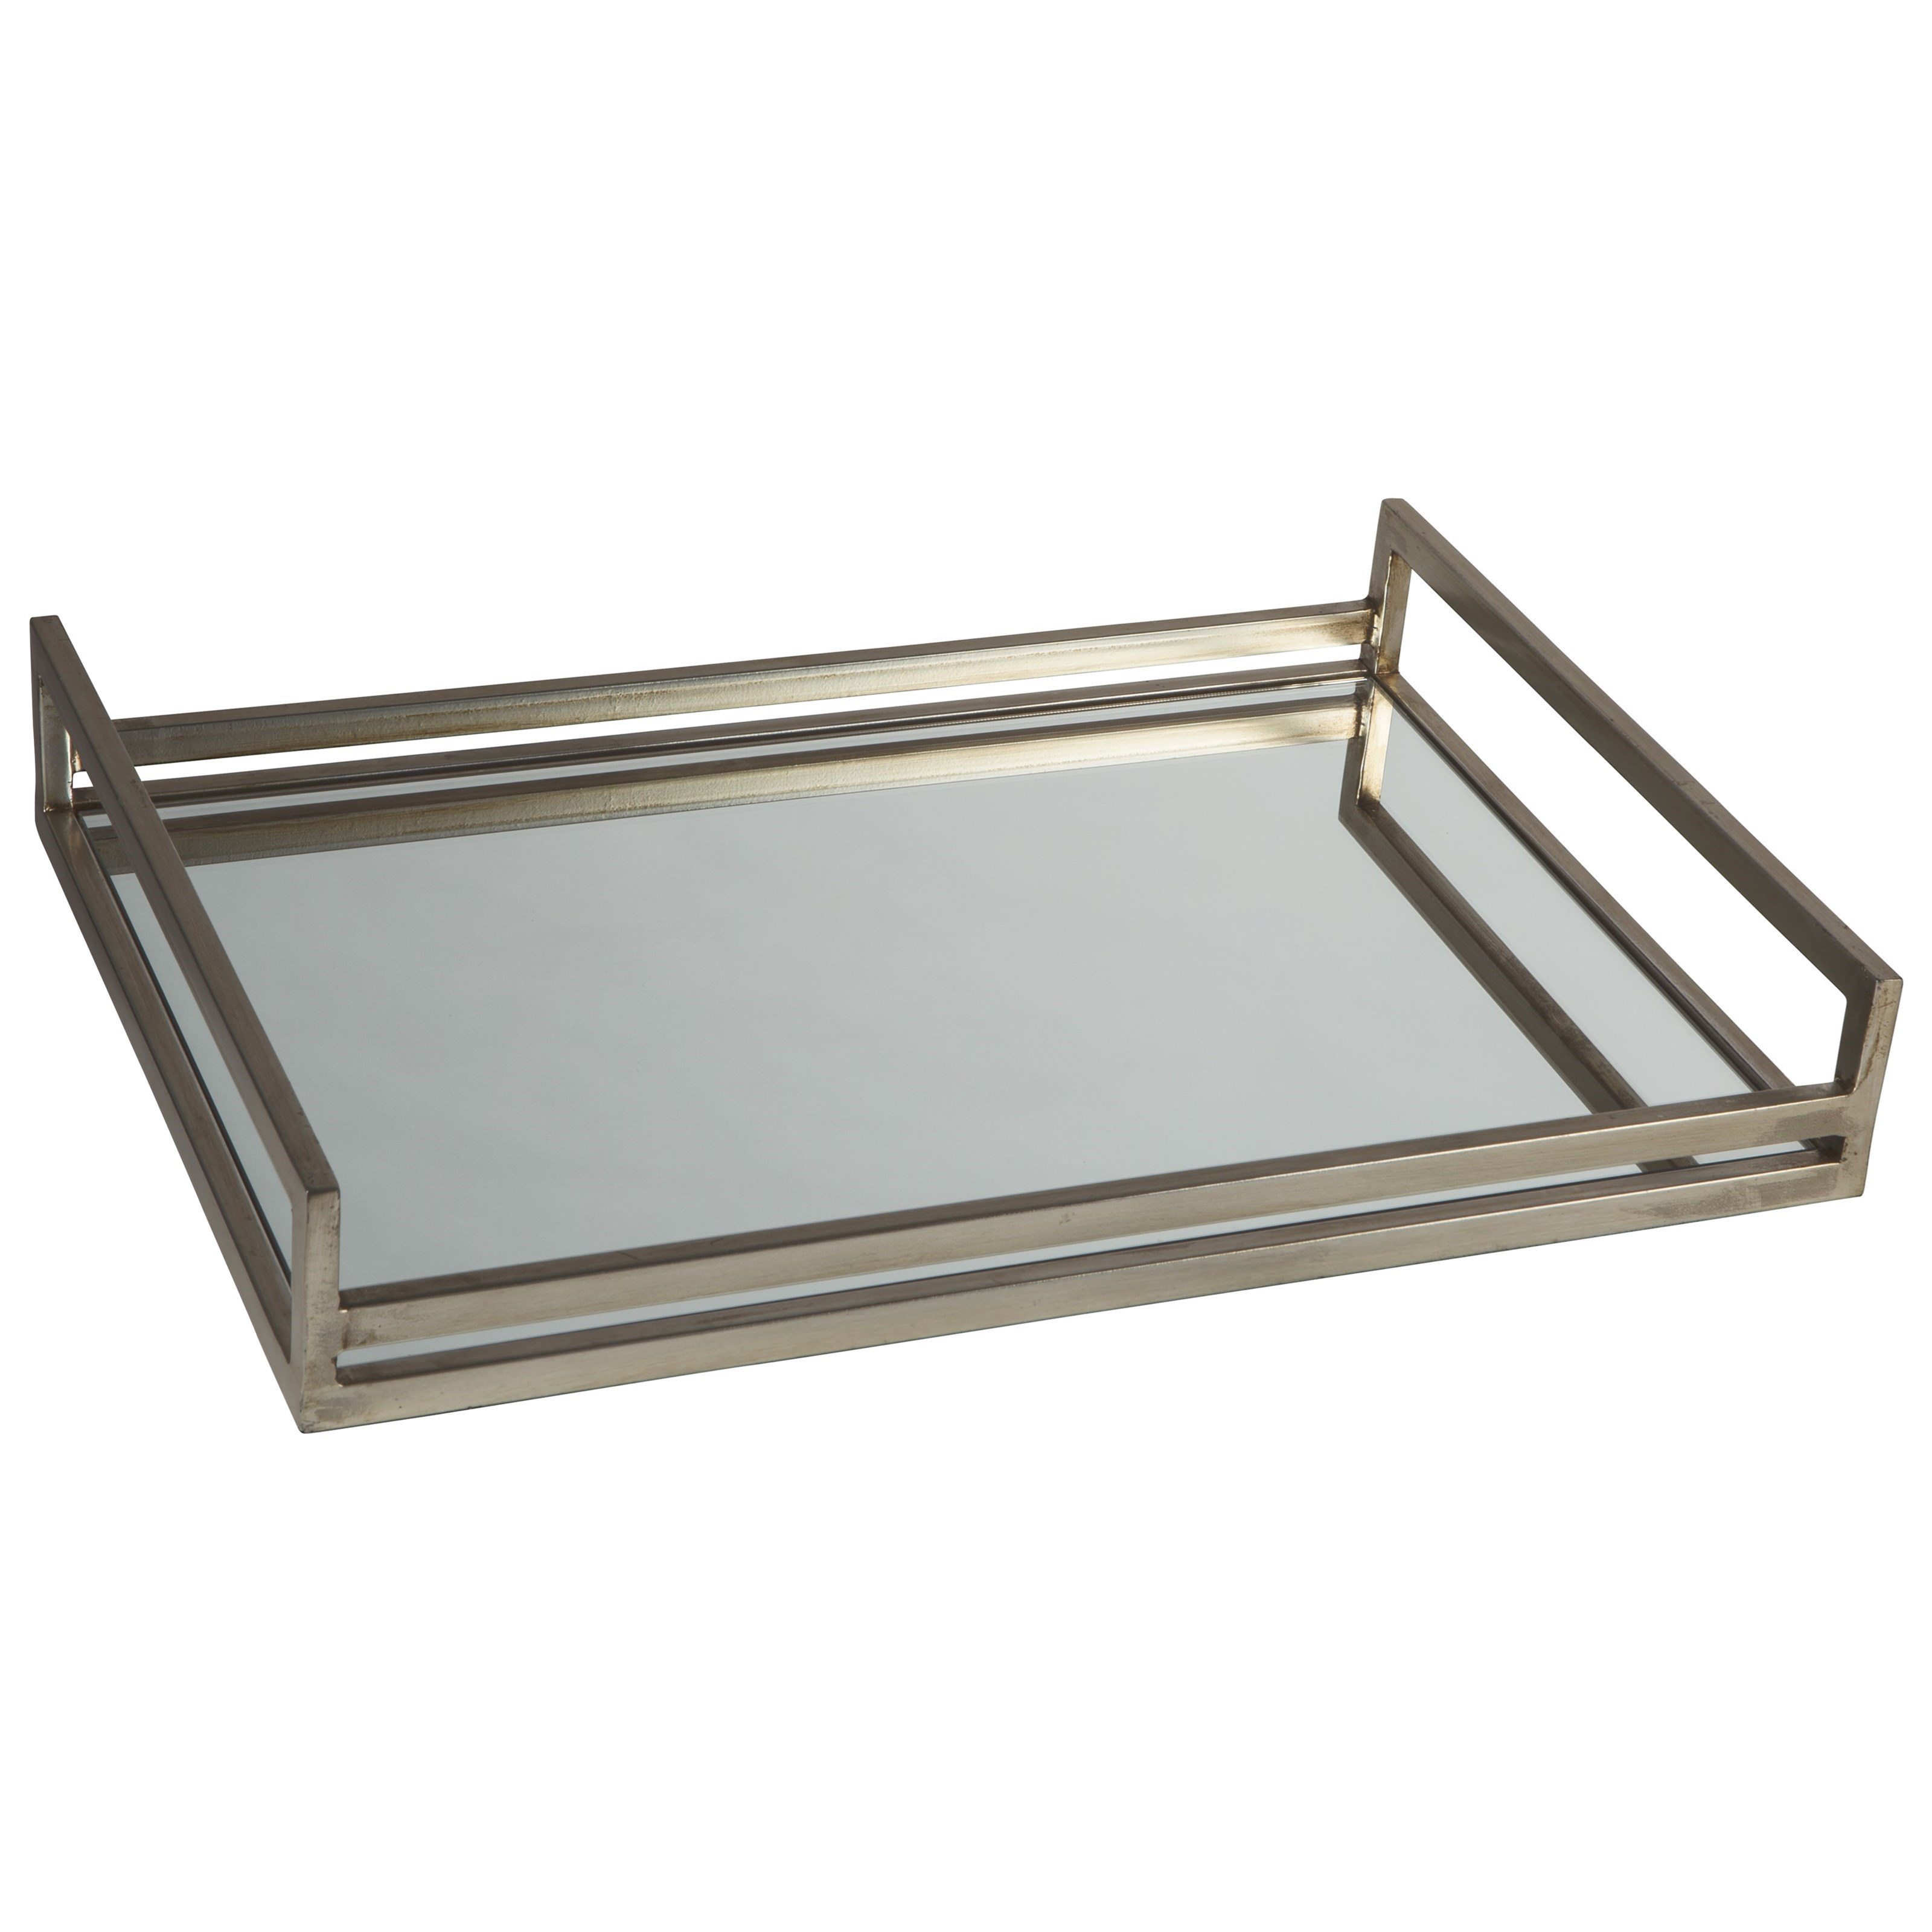 Accents Derex Silver Tray by Ashley Signature Design at O'Dunk & O'Bright Furniture